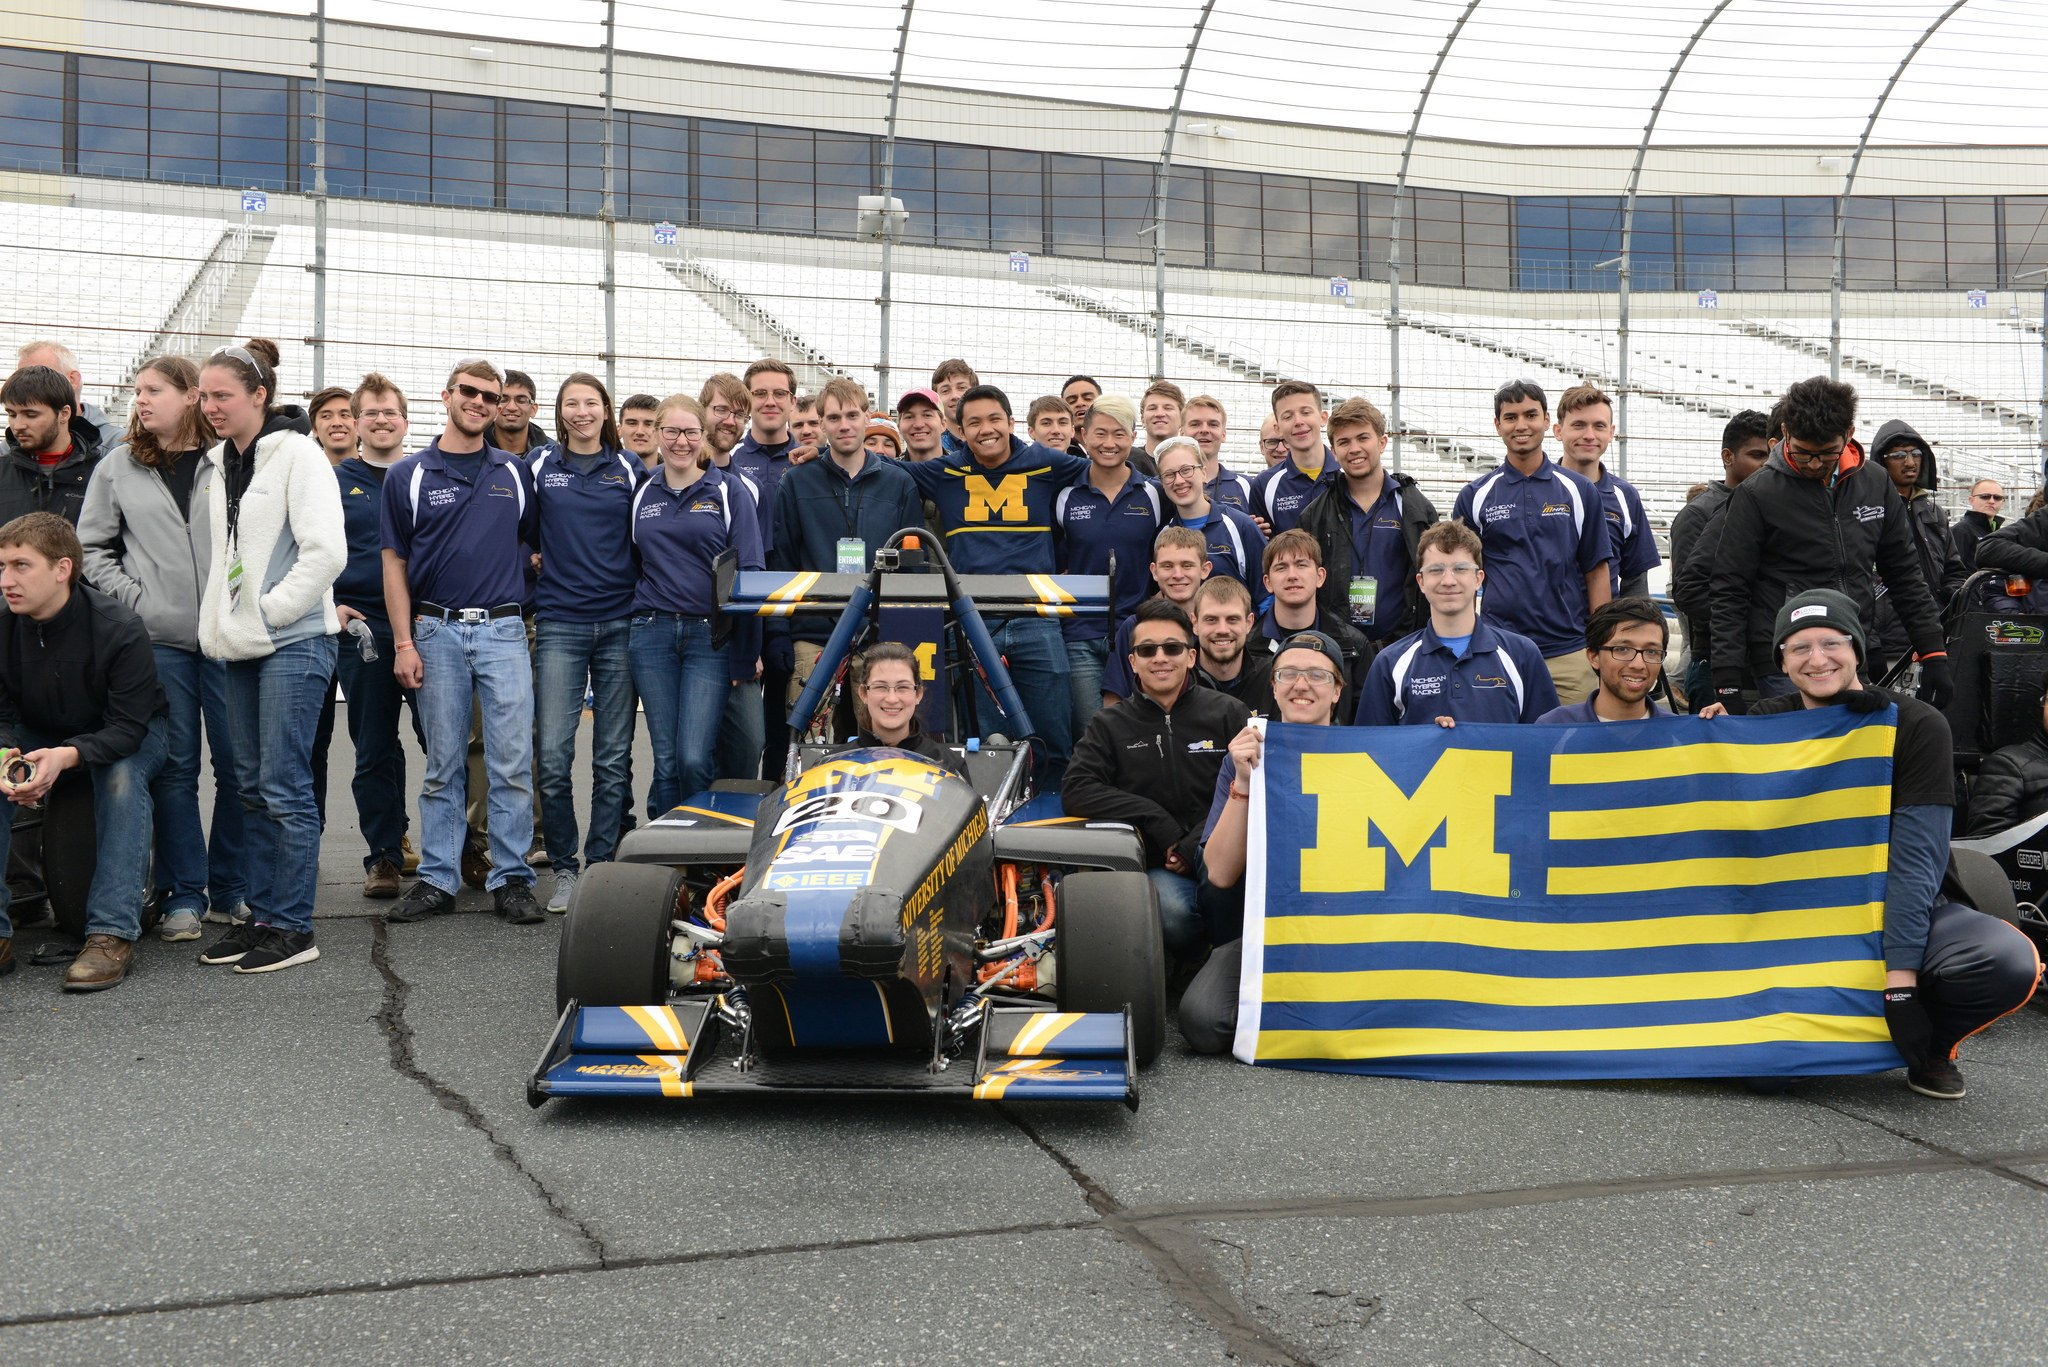 Congrats to University of Michigan @UMHybridRacing for taking 5th place in hybrid at #FormulaHybrid17! @UMengineering @michigandaily https://t.co/xlwn94mVvC